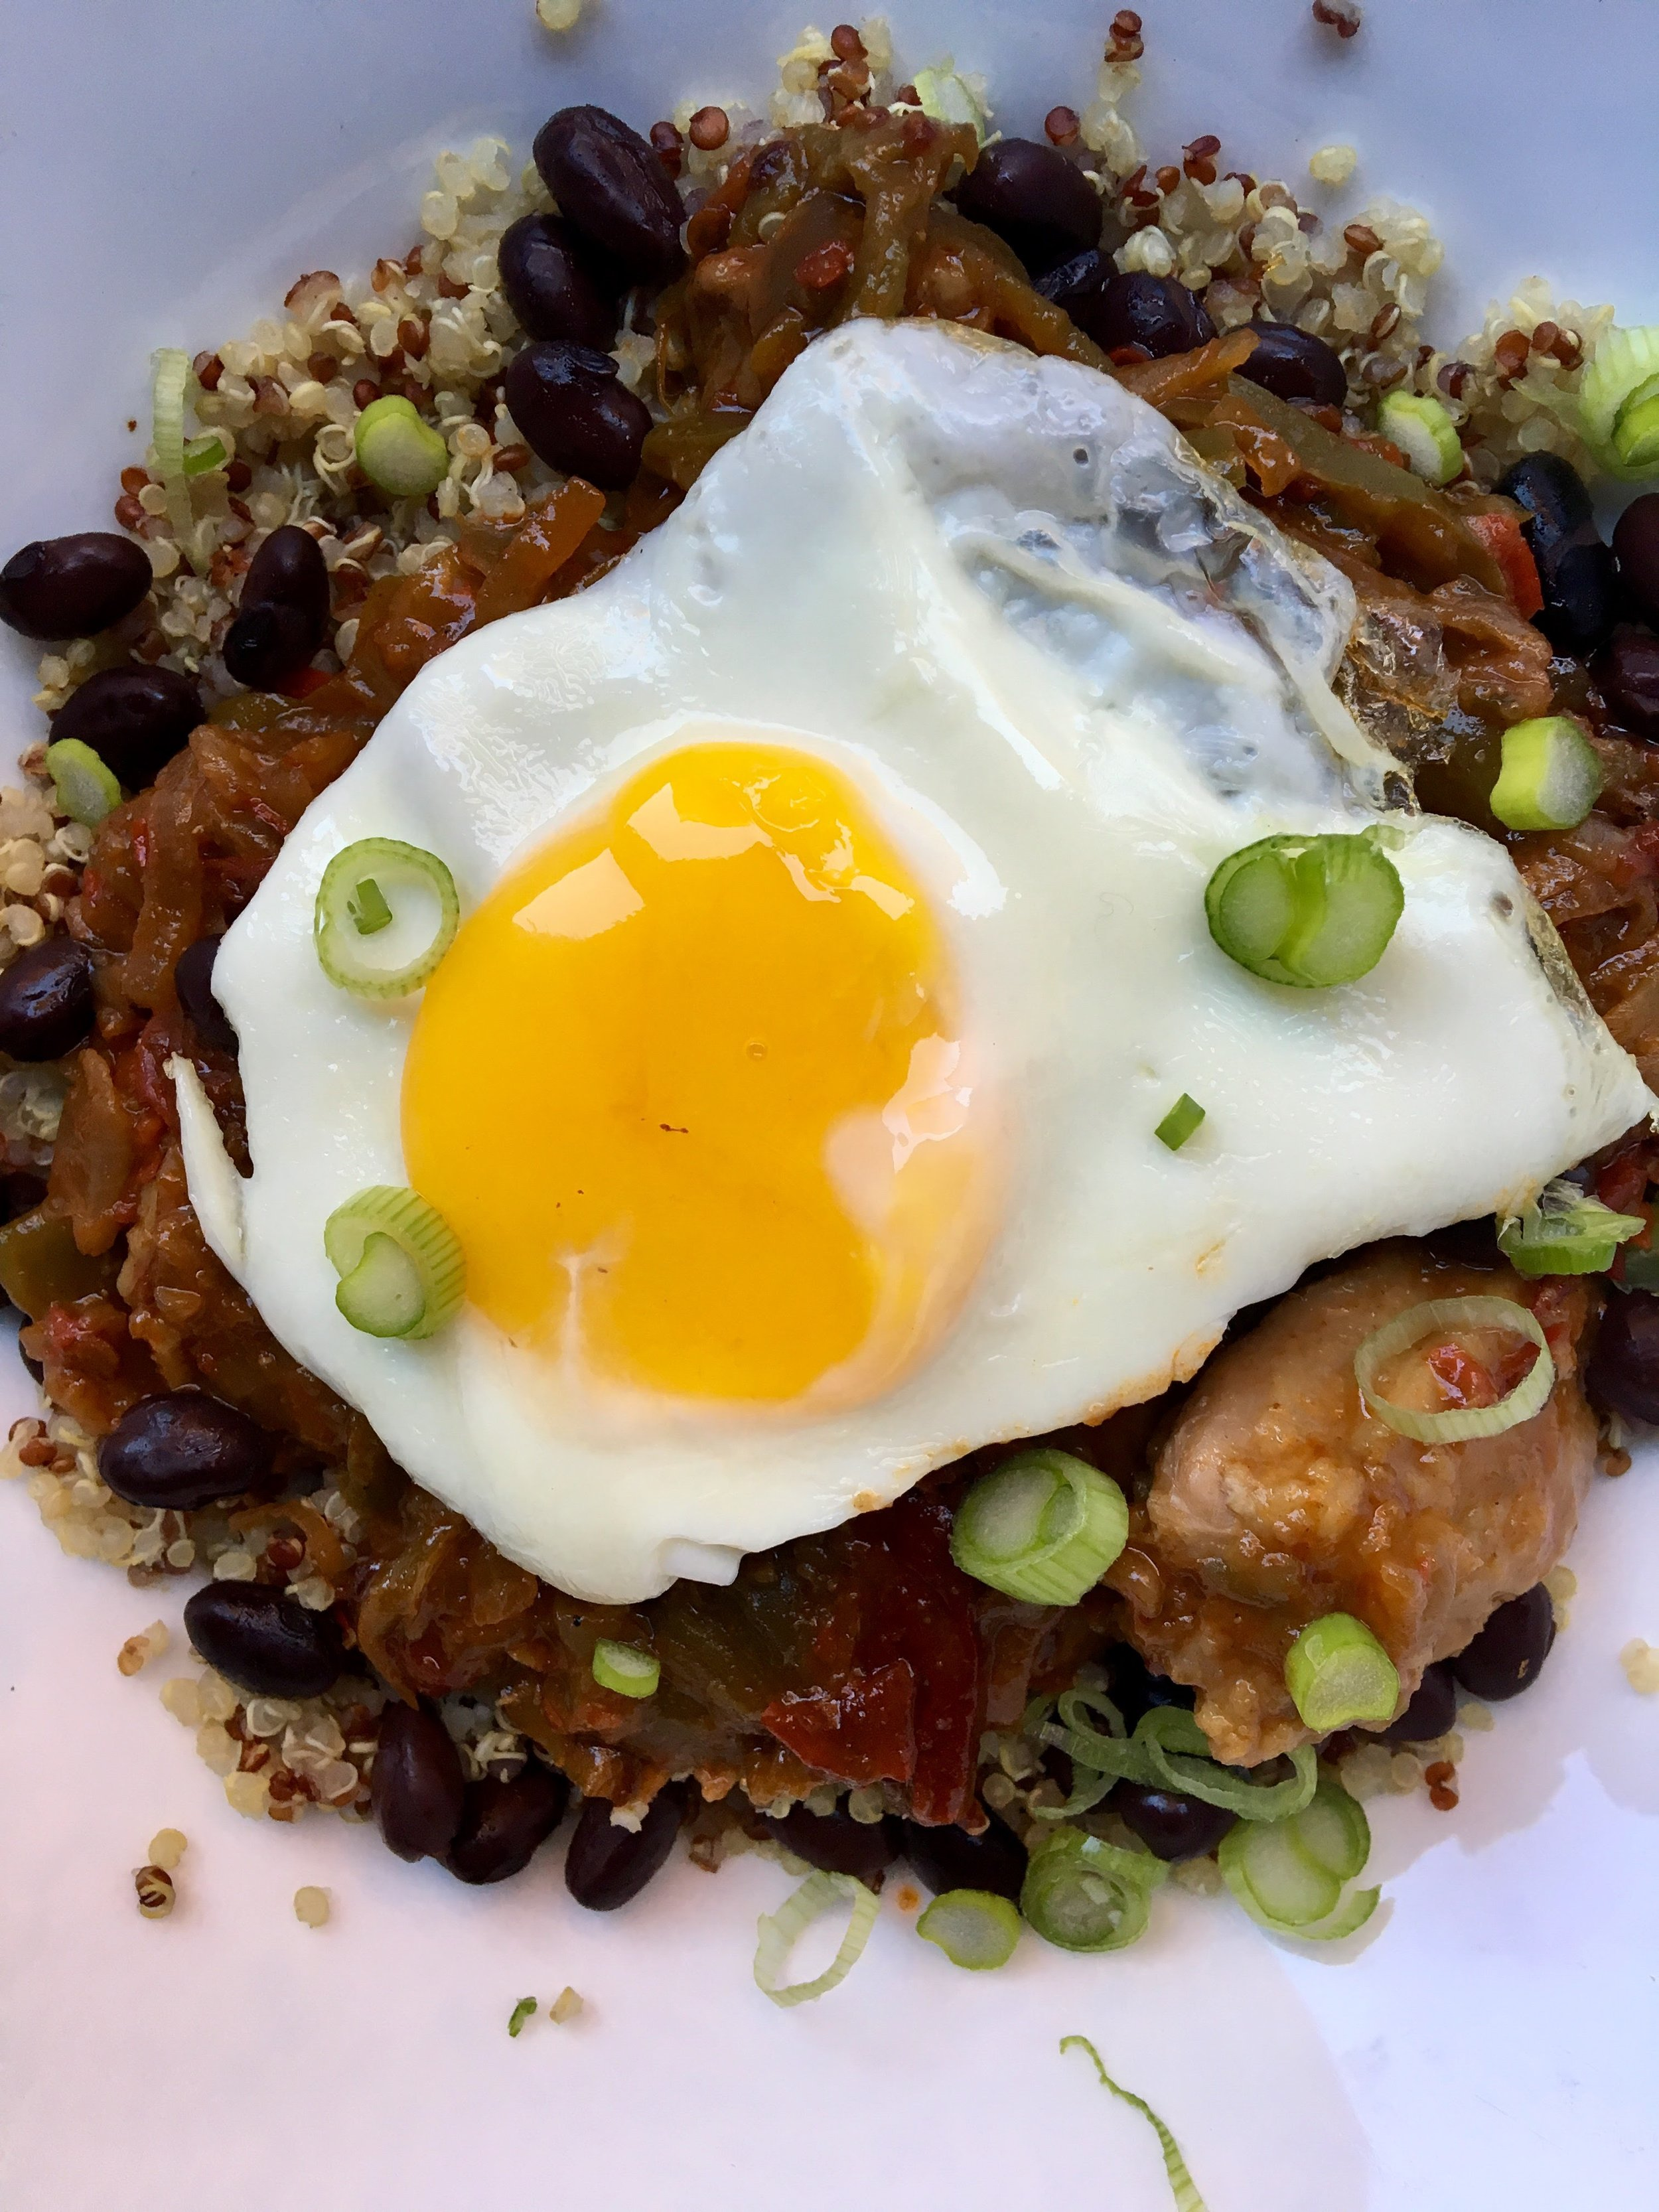 chipotle chicken layered with grains, beans + sunny side egg